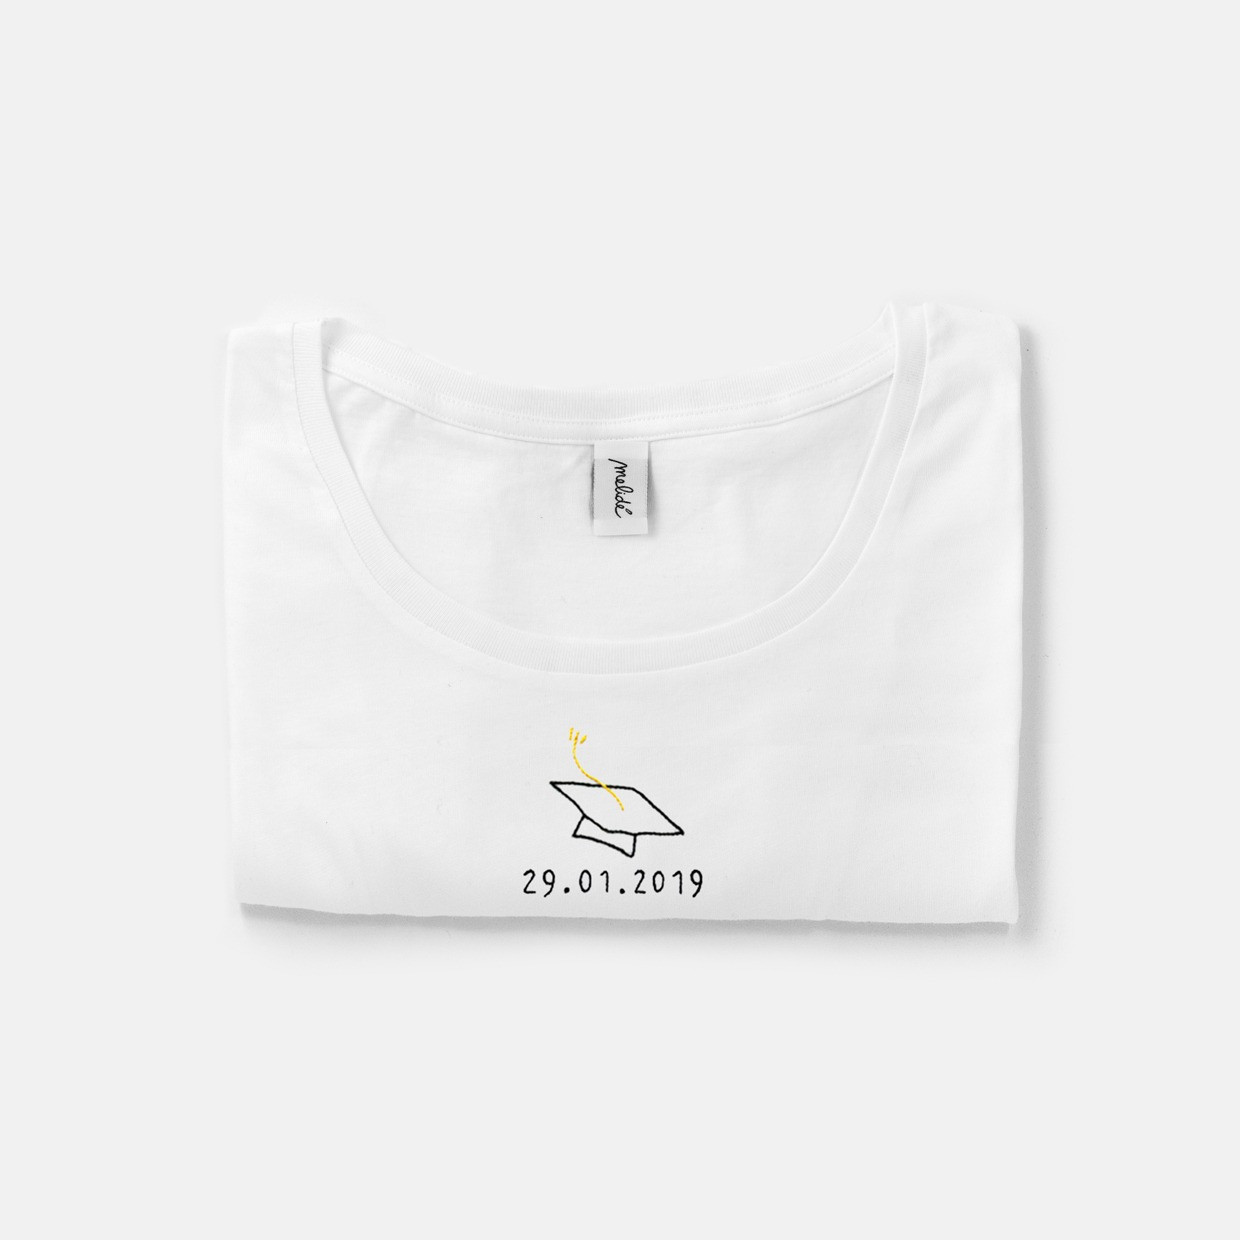 The GRADUATION DAY wide neck tee - hat